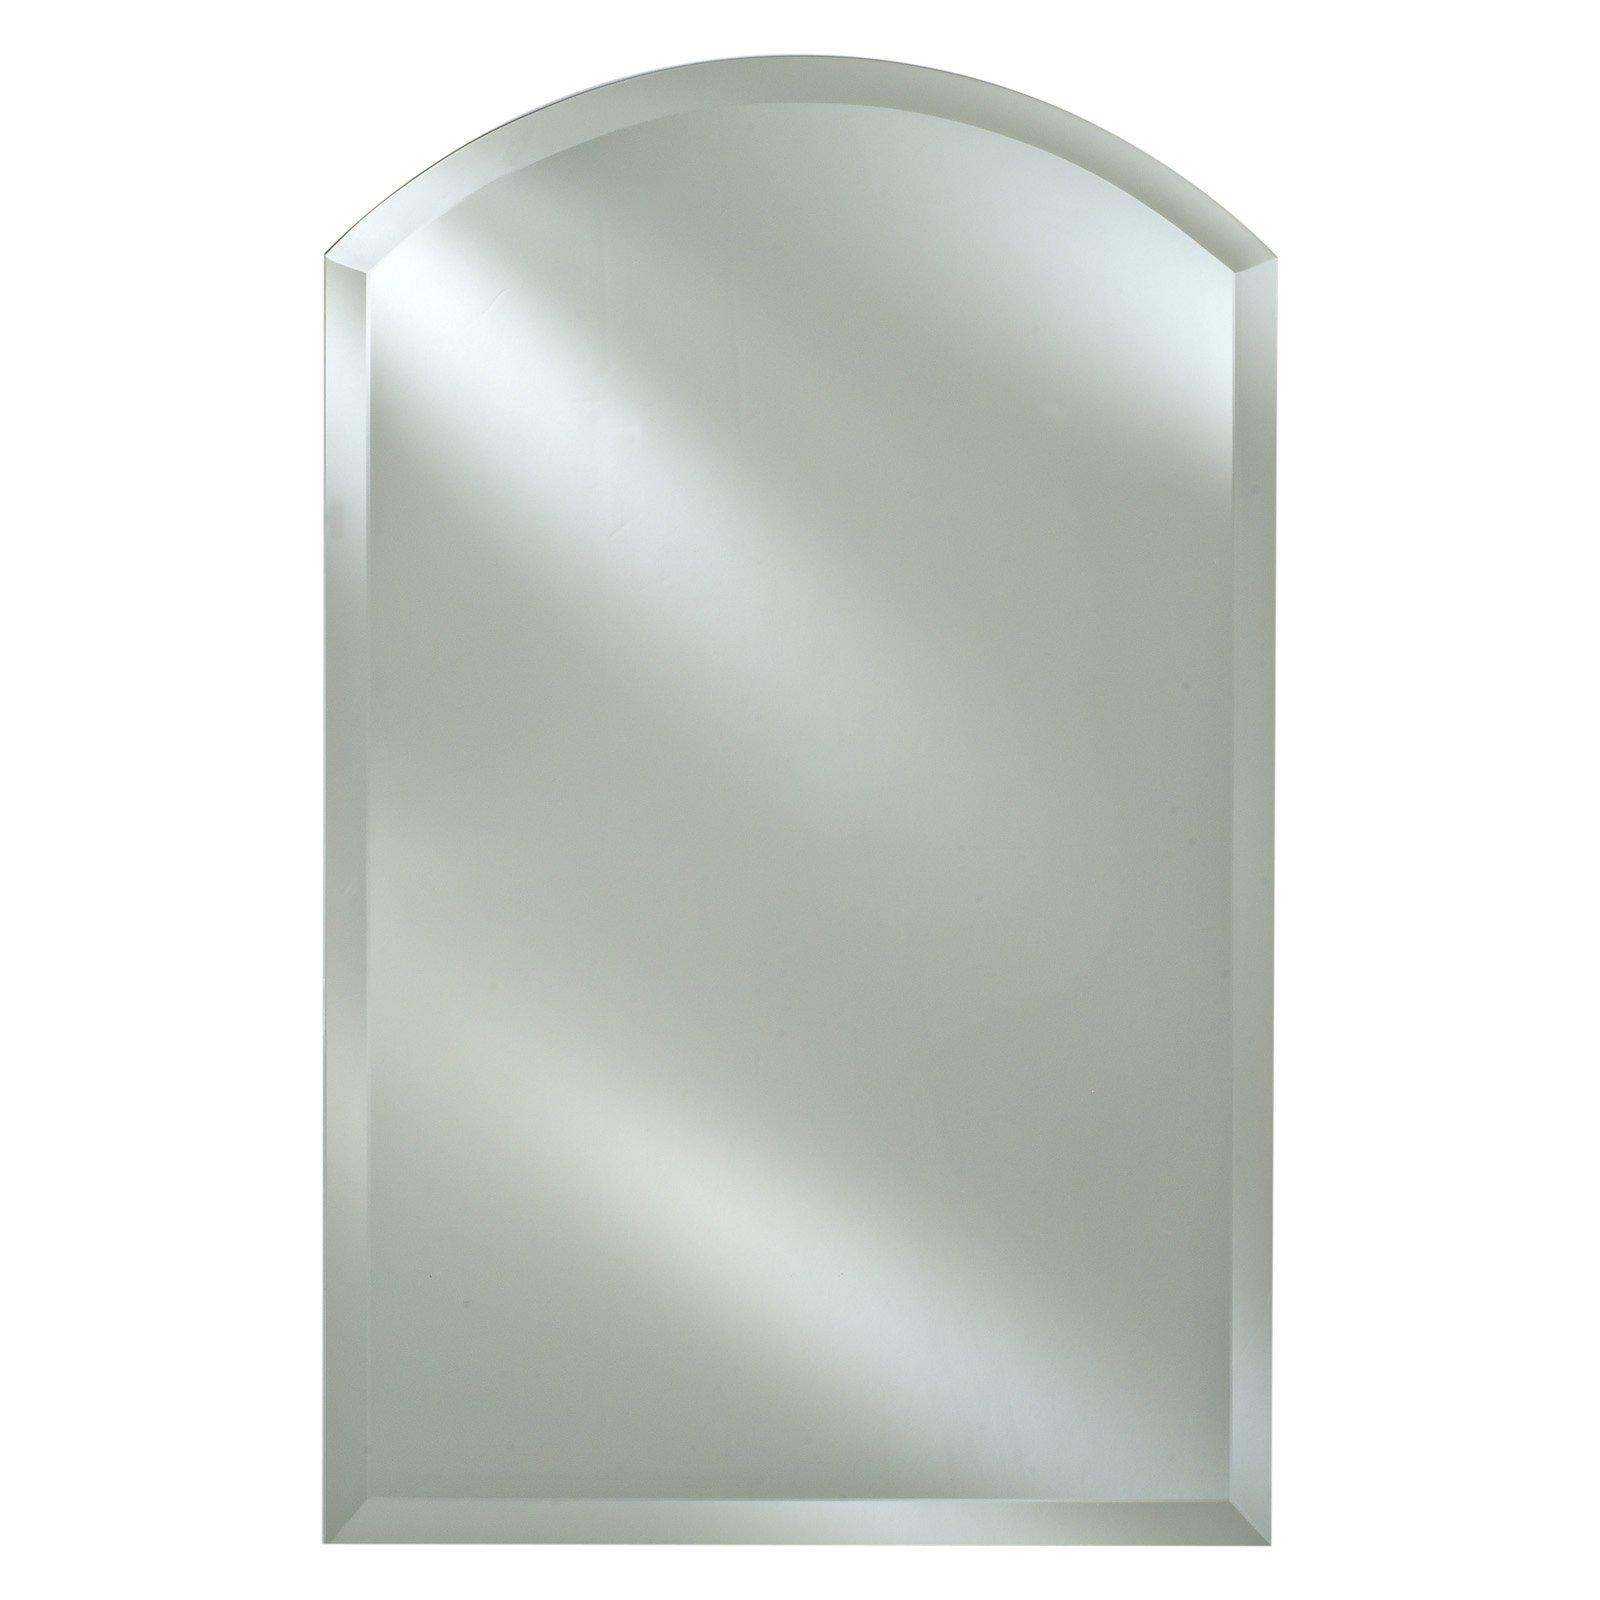 Radiance Frameless Arch Vanity / Wall Mirror | Hayneedle For Frameless Arched Mirror (View 13 of 20)